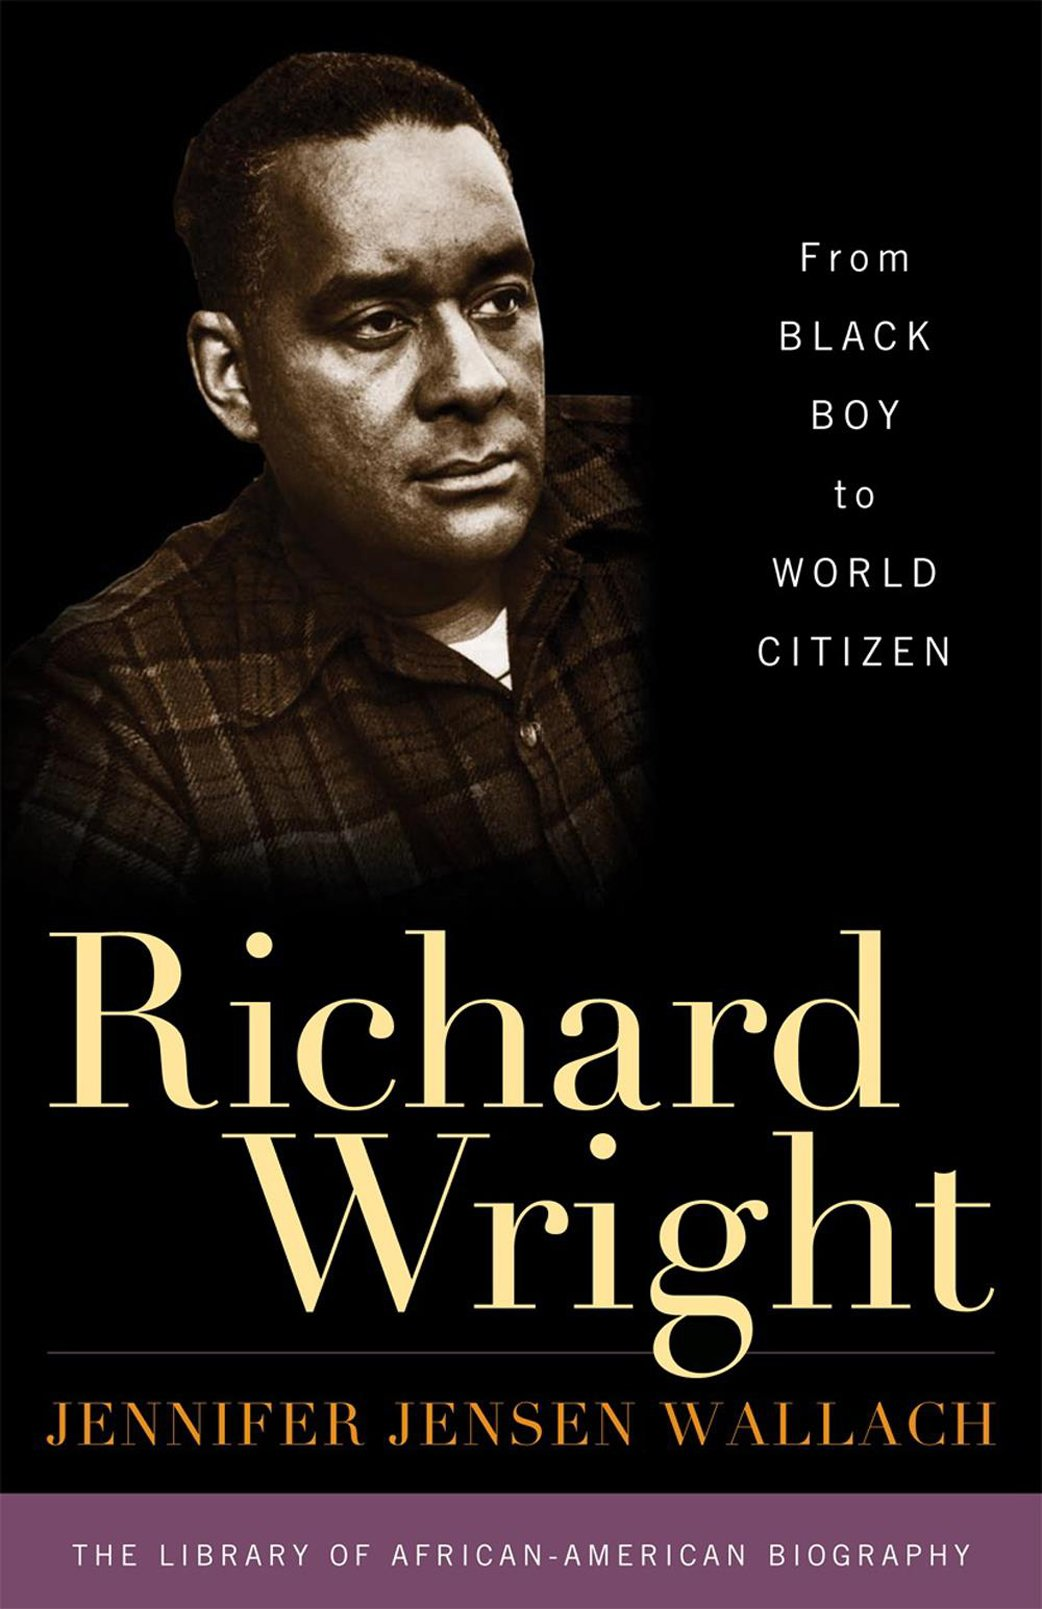 black boy by richard wright essay 91 121 113 106 black boy by richard wright essay